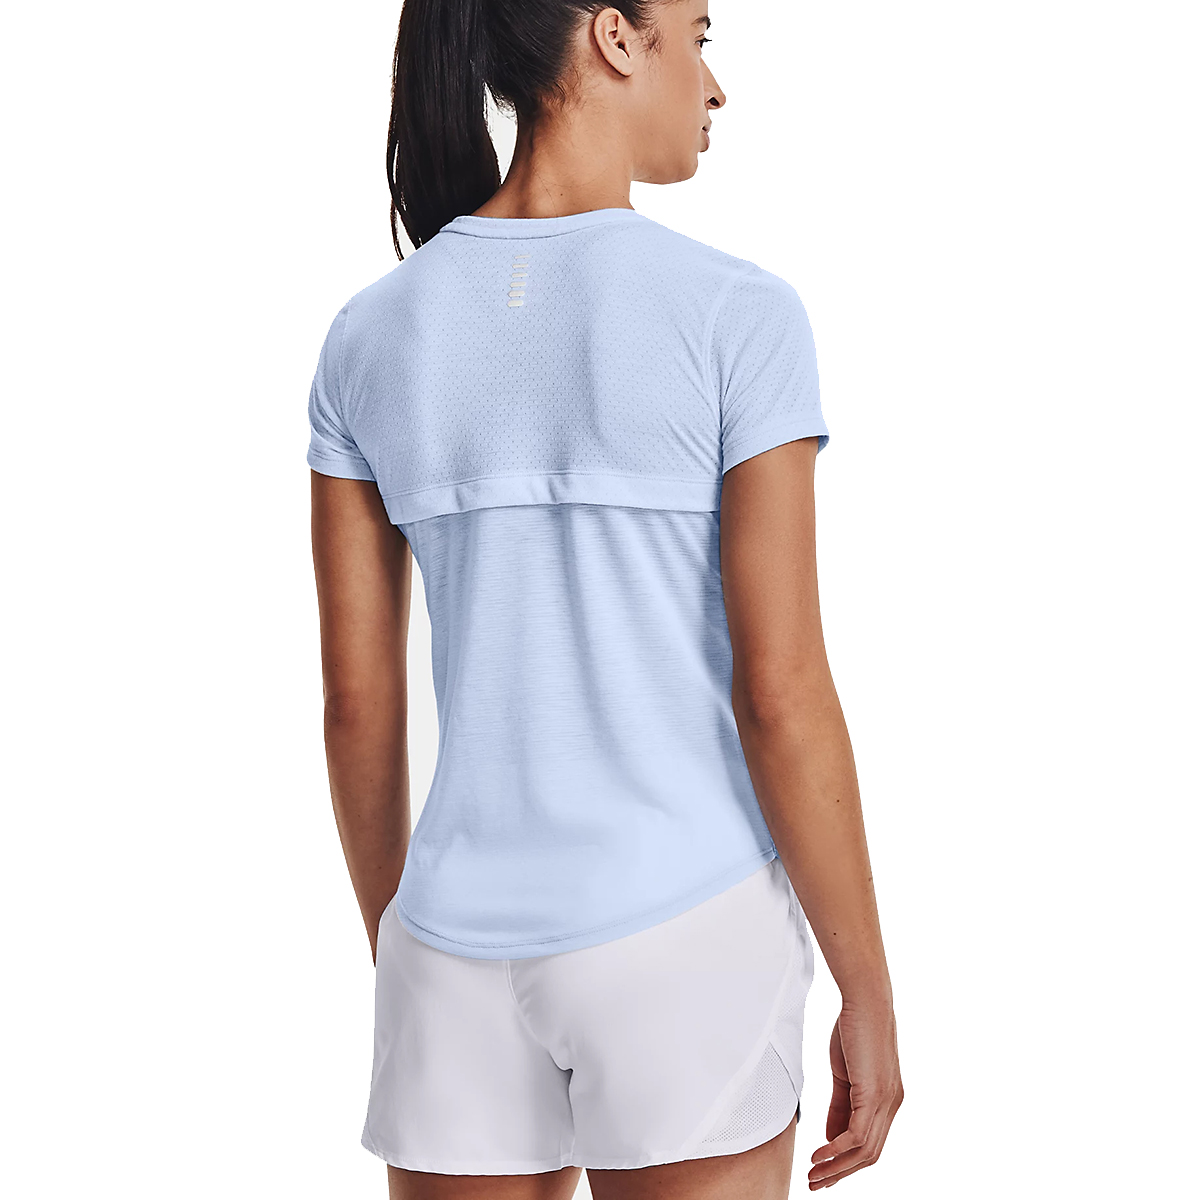 Women's Under Armour Streaker Short Sleeve - Color: Isotope Blue - Size: S, Isotope Blue, large, image 2